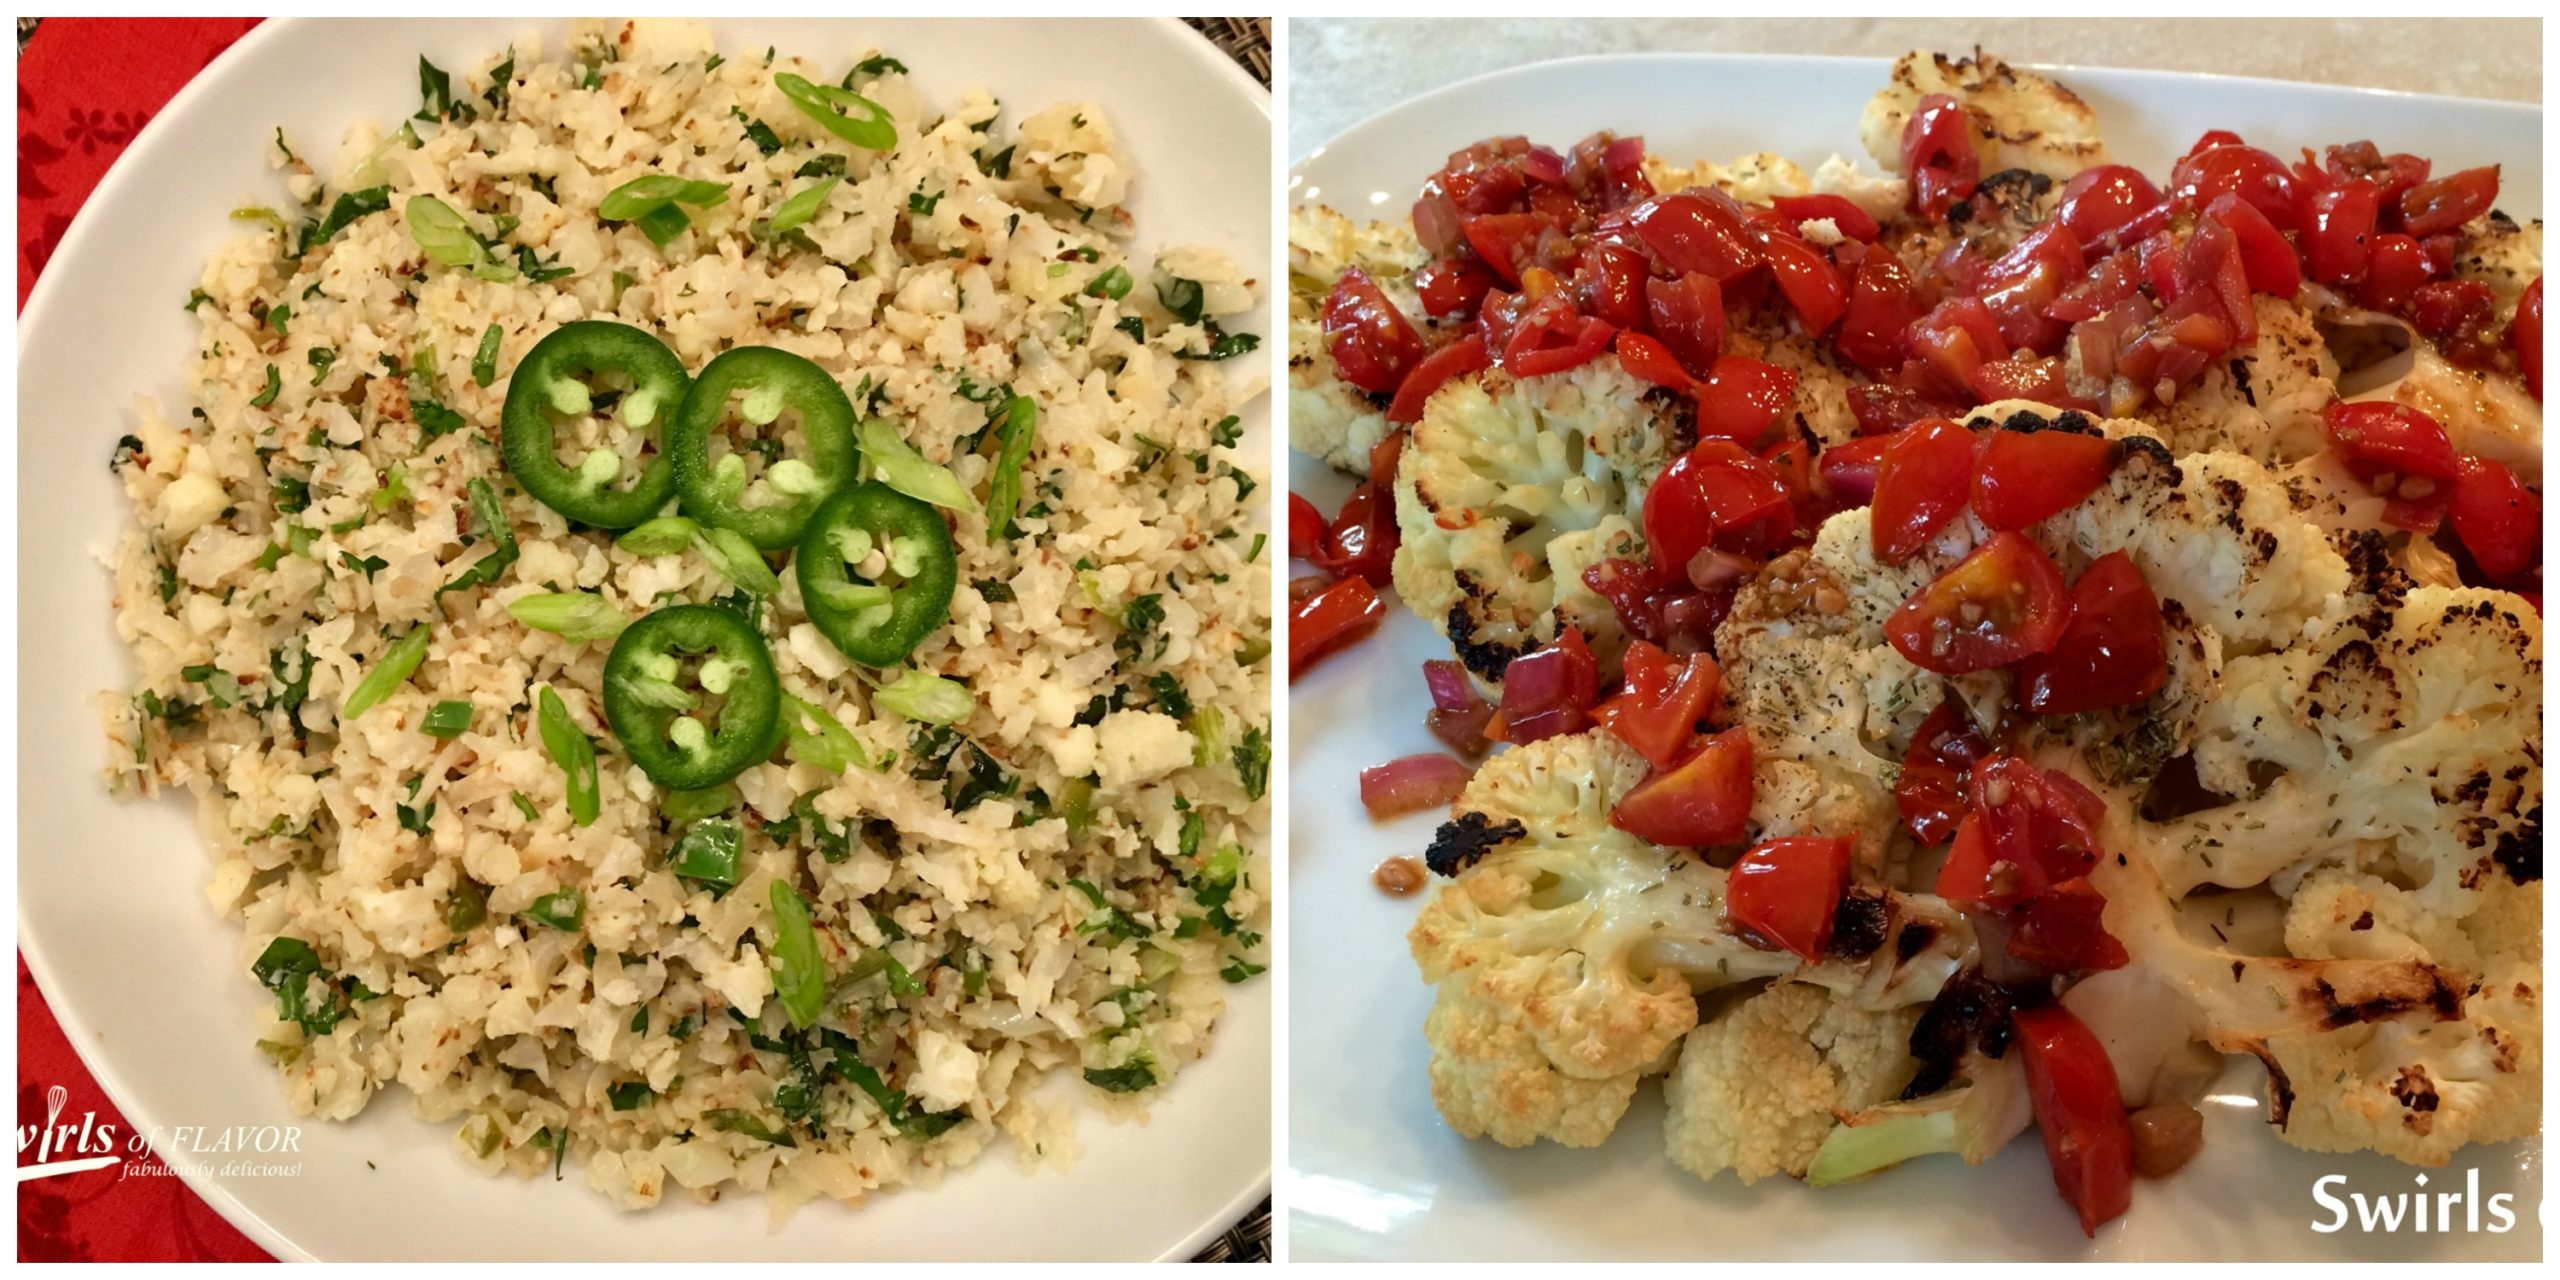 Cauliflower Rice and Cauliflower Steaks